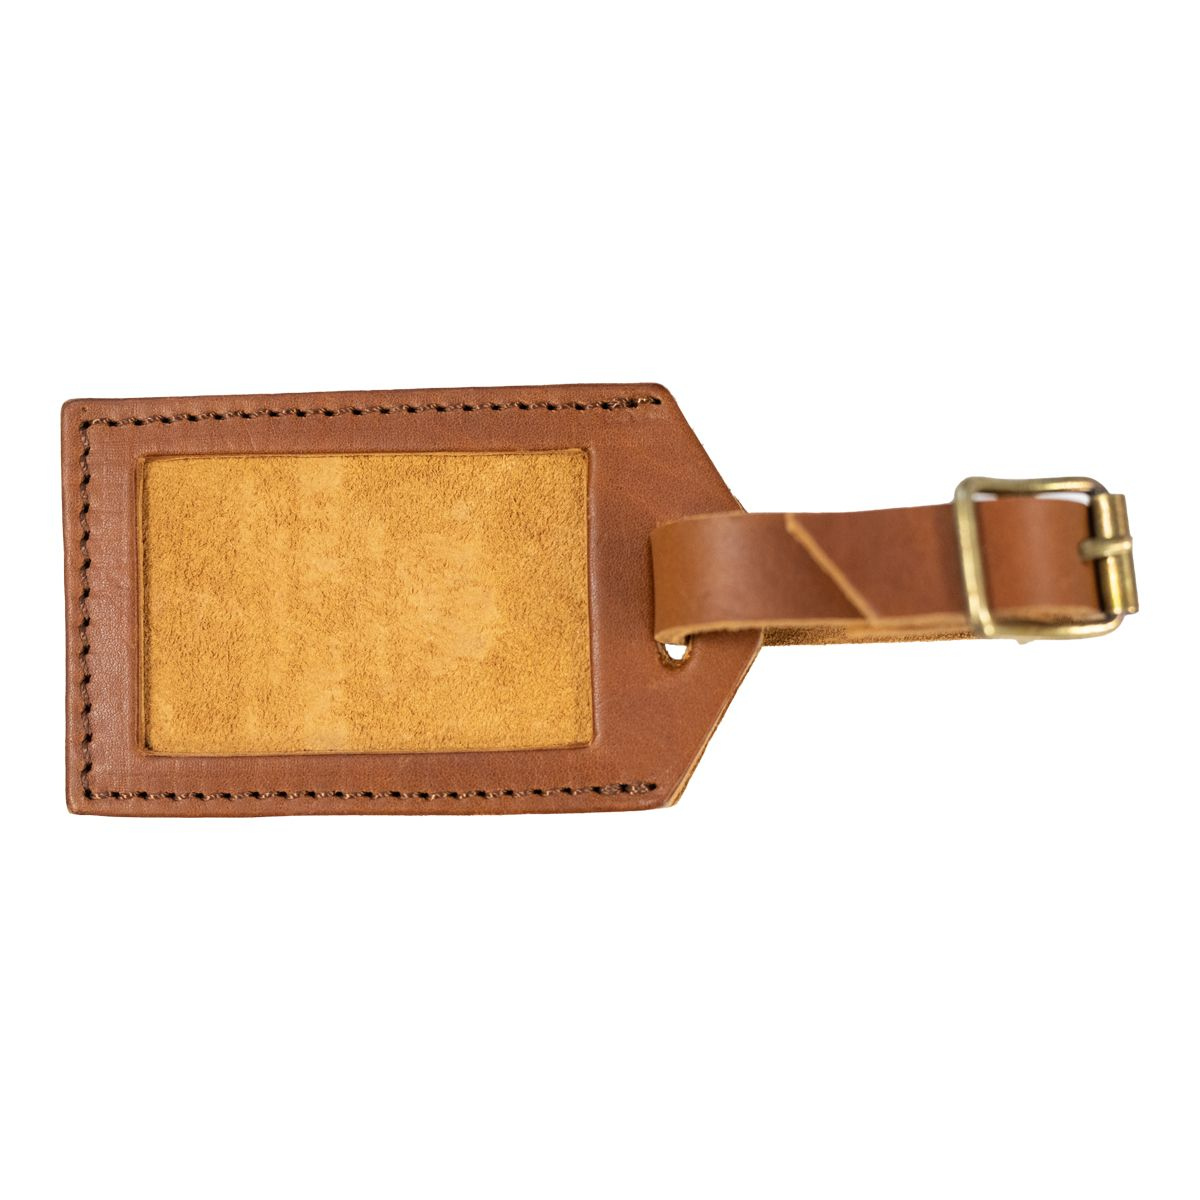 PEARL VALLEY LEATHER LUGGAGE TAG